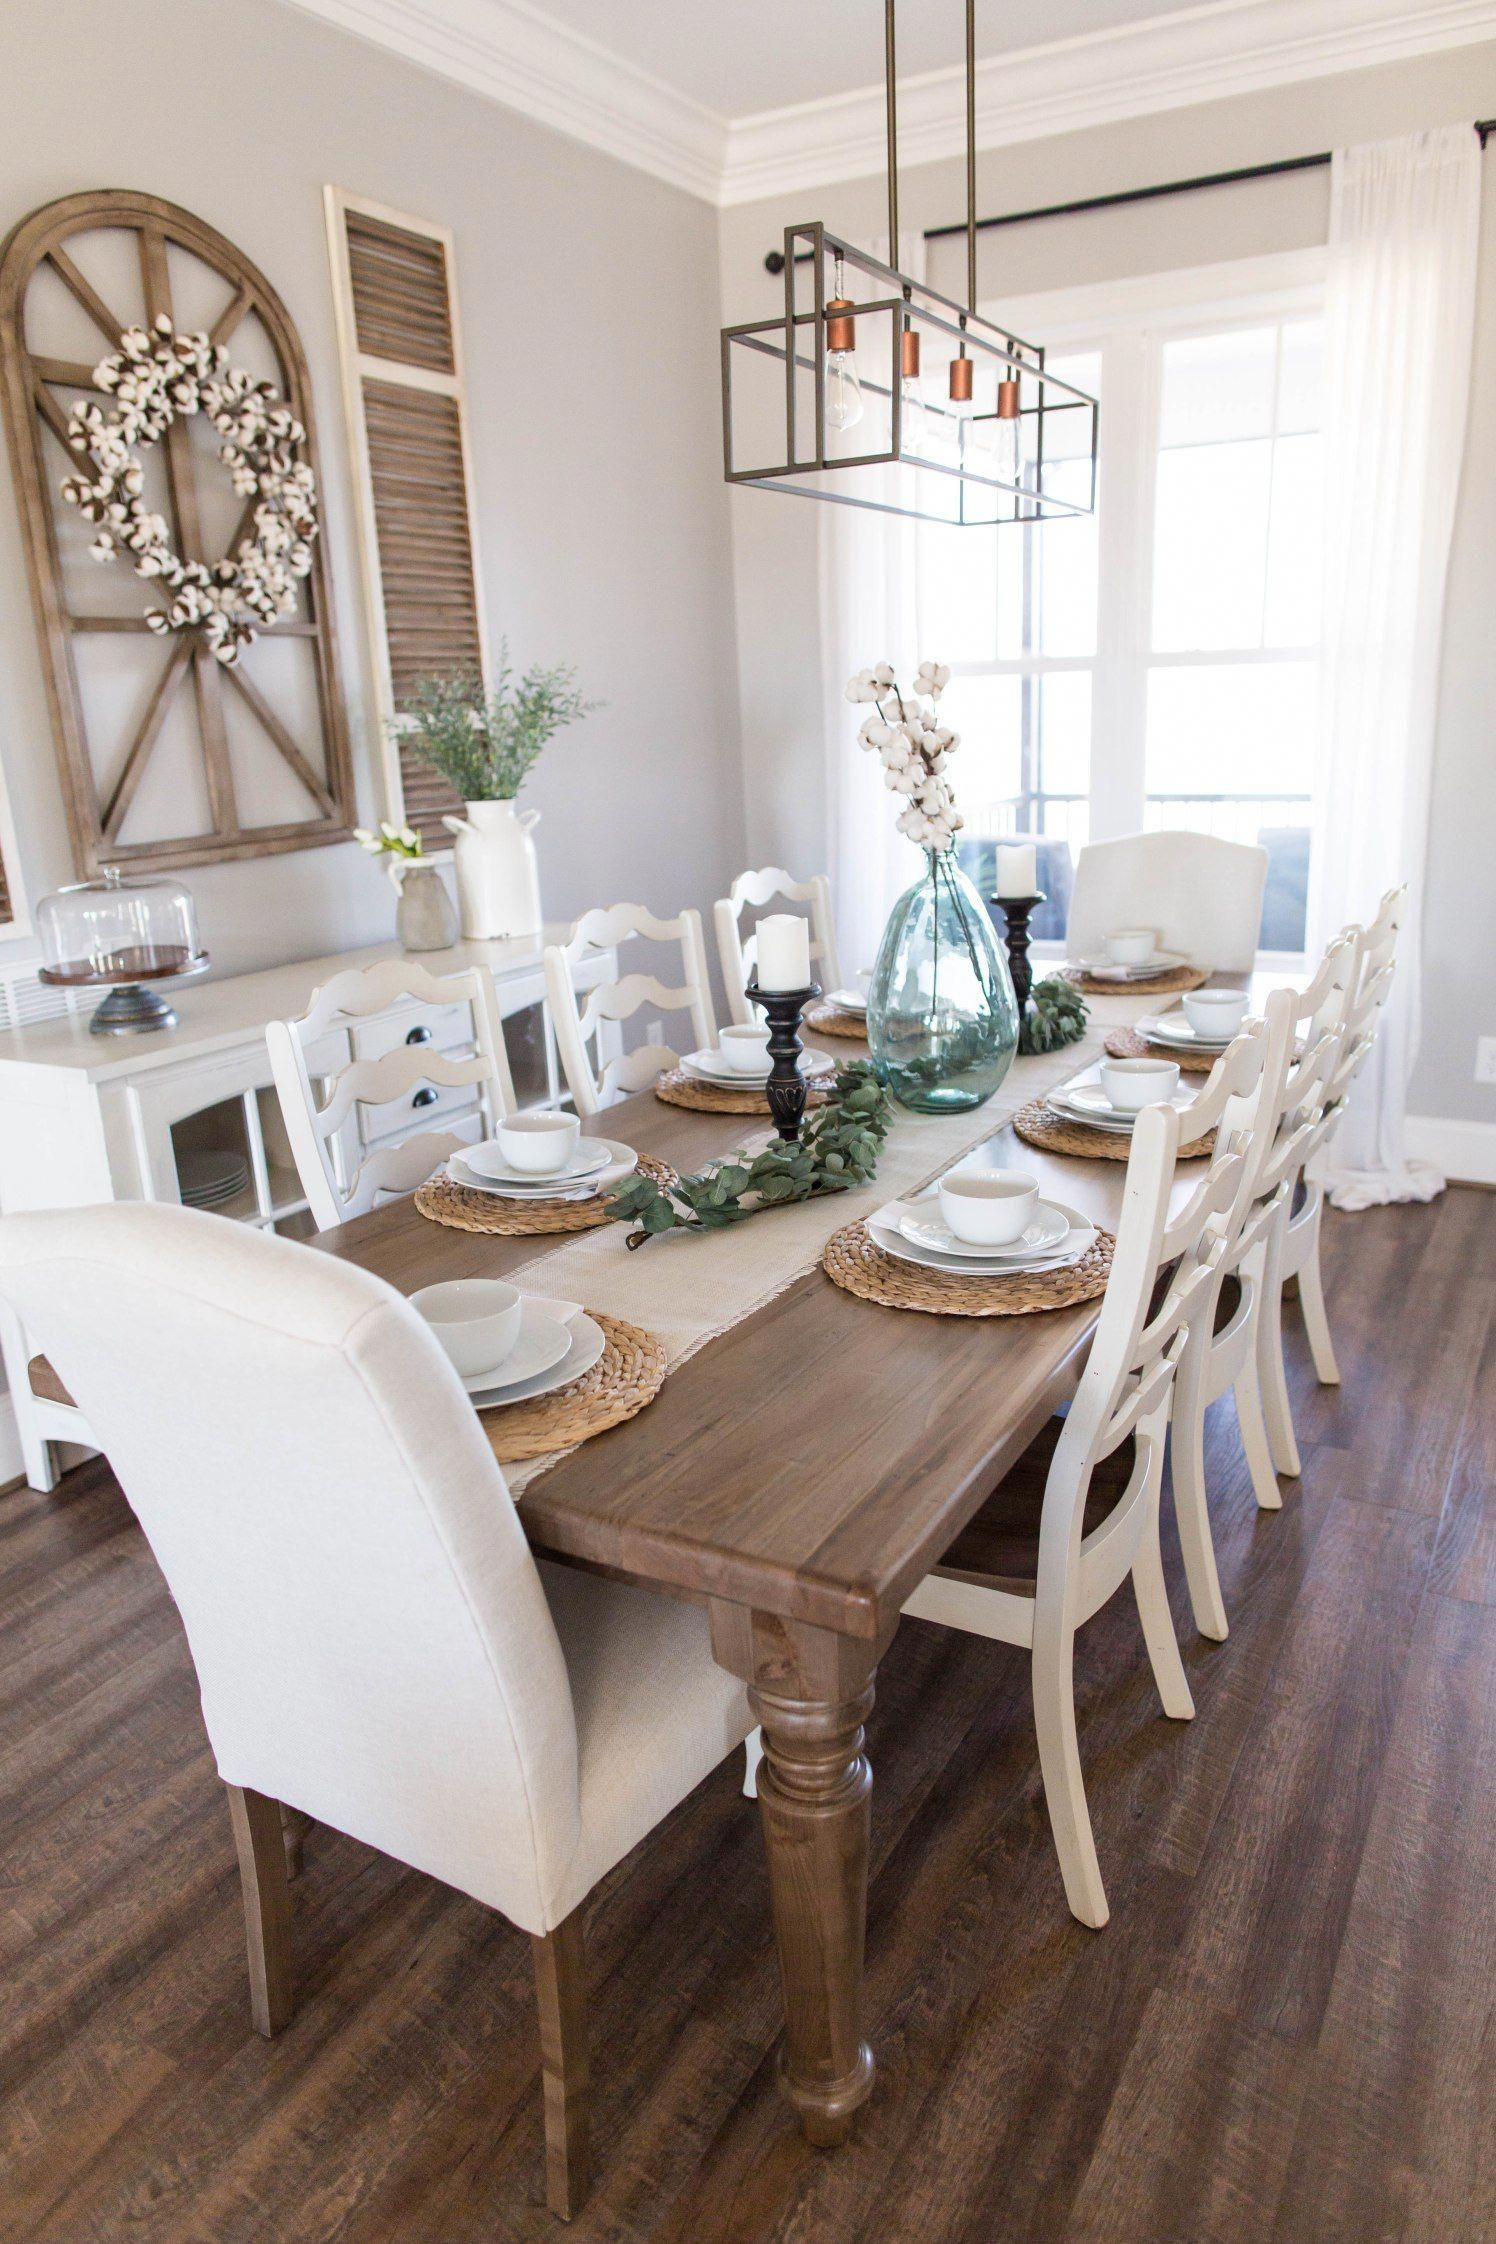 Fabulous Spring Dining Room Table Centerpiece Ideas Modern Farmhouse Dining Room Farmhouse Dining Rooms Decor Dining Room Makeover